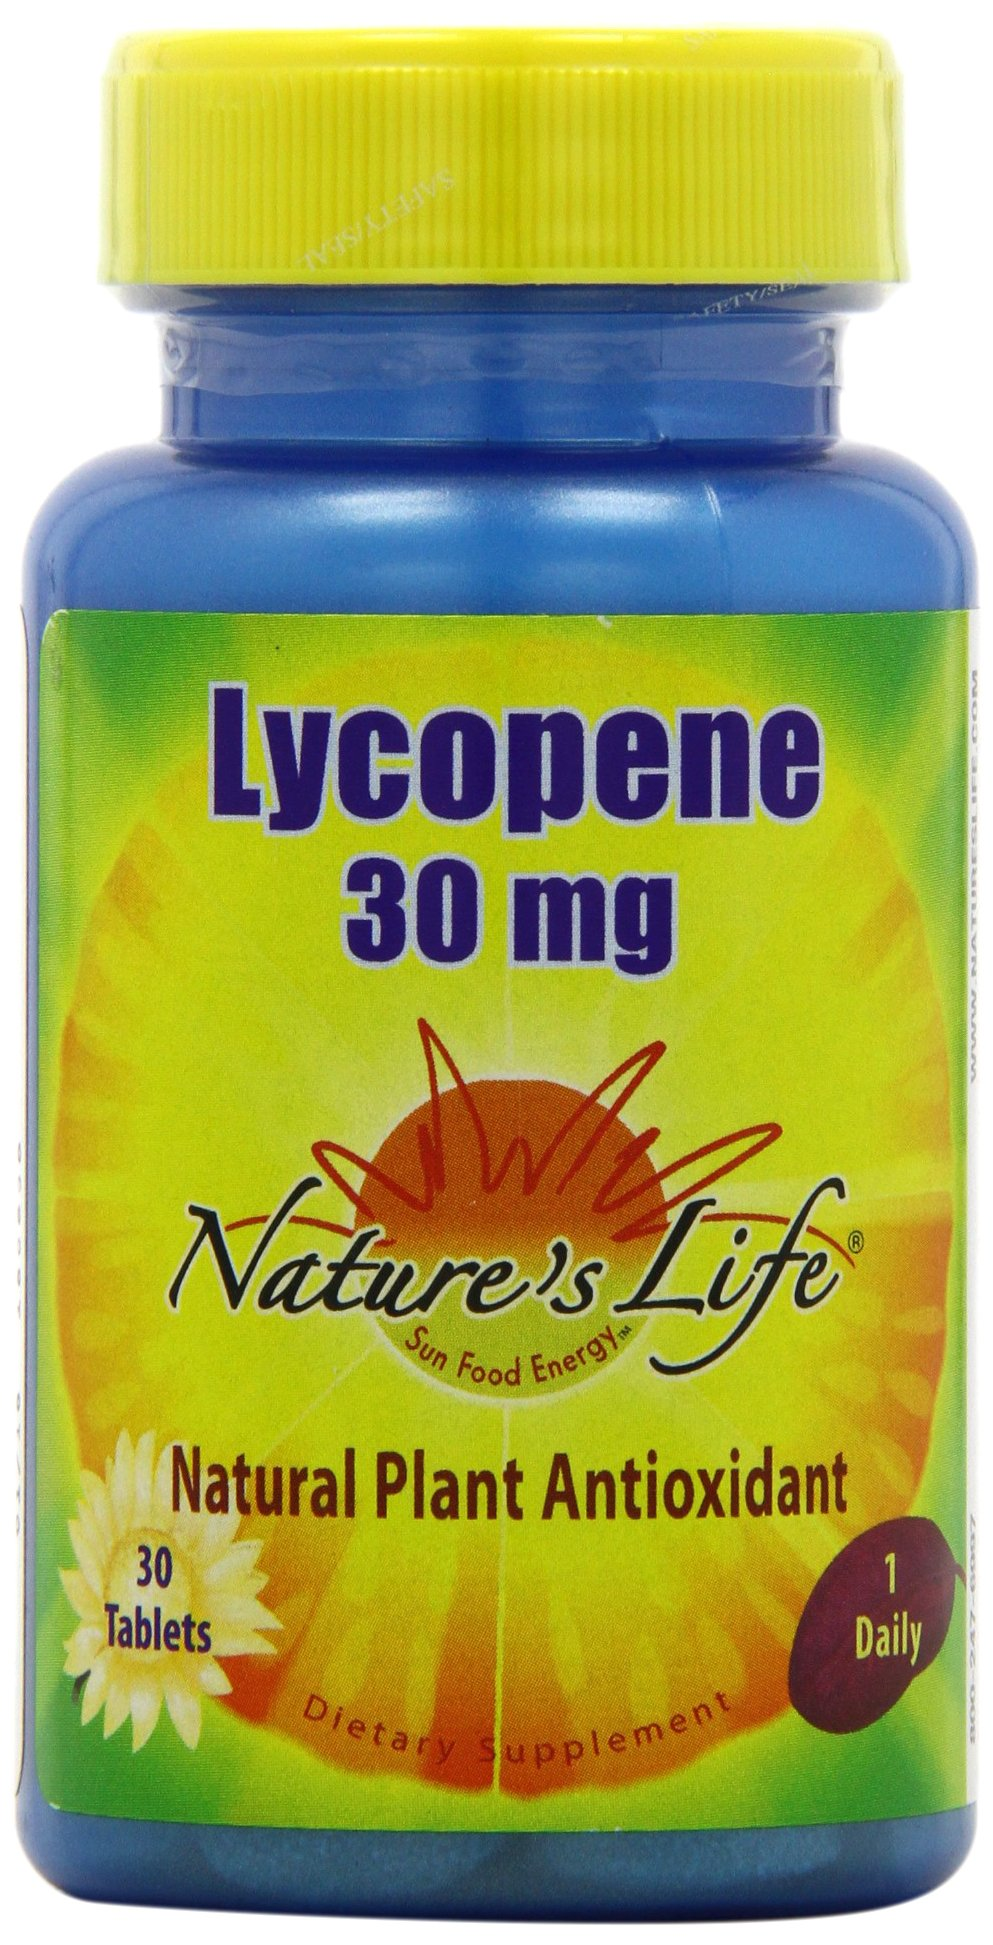 Nature's Life Lycopene Tablets, 30 Mg, 30 Count